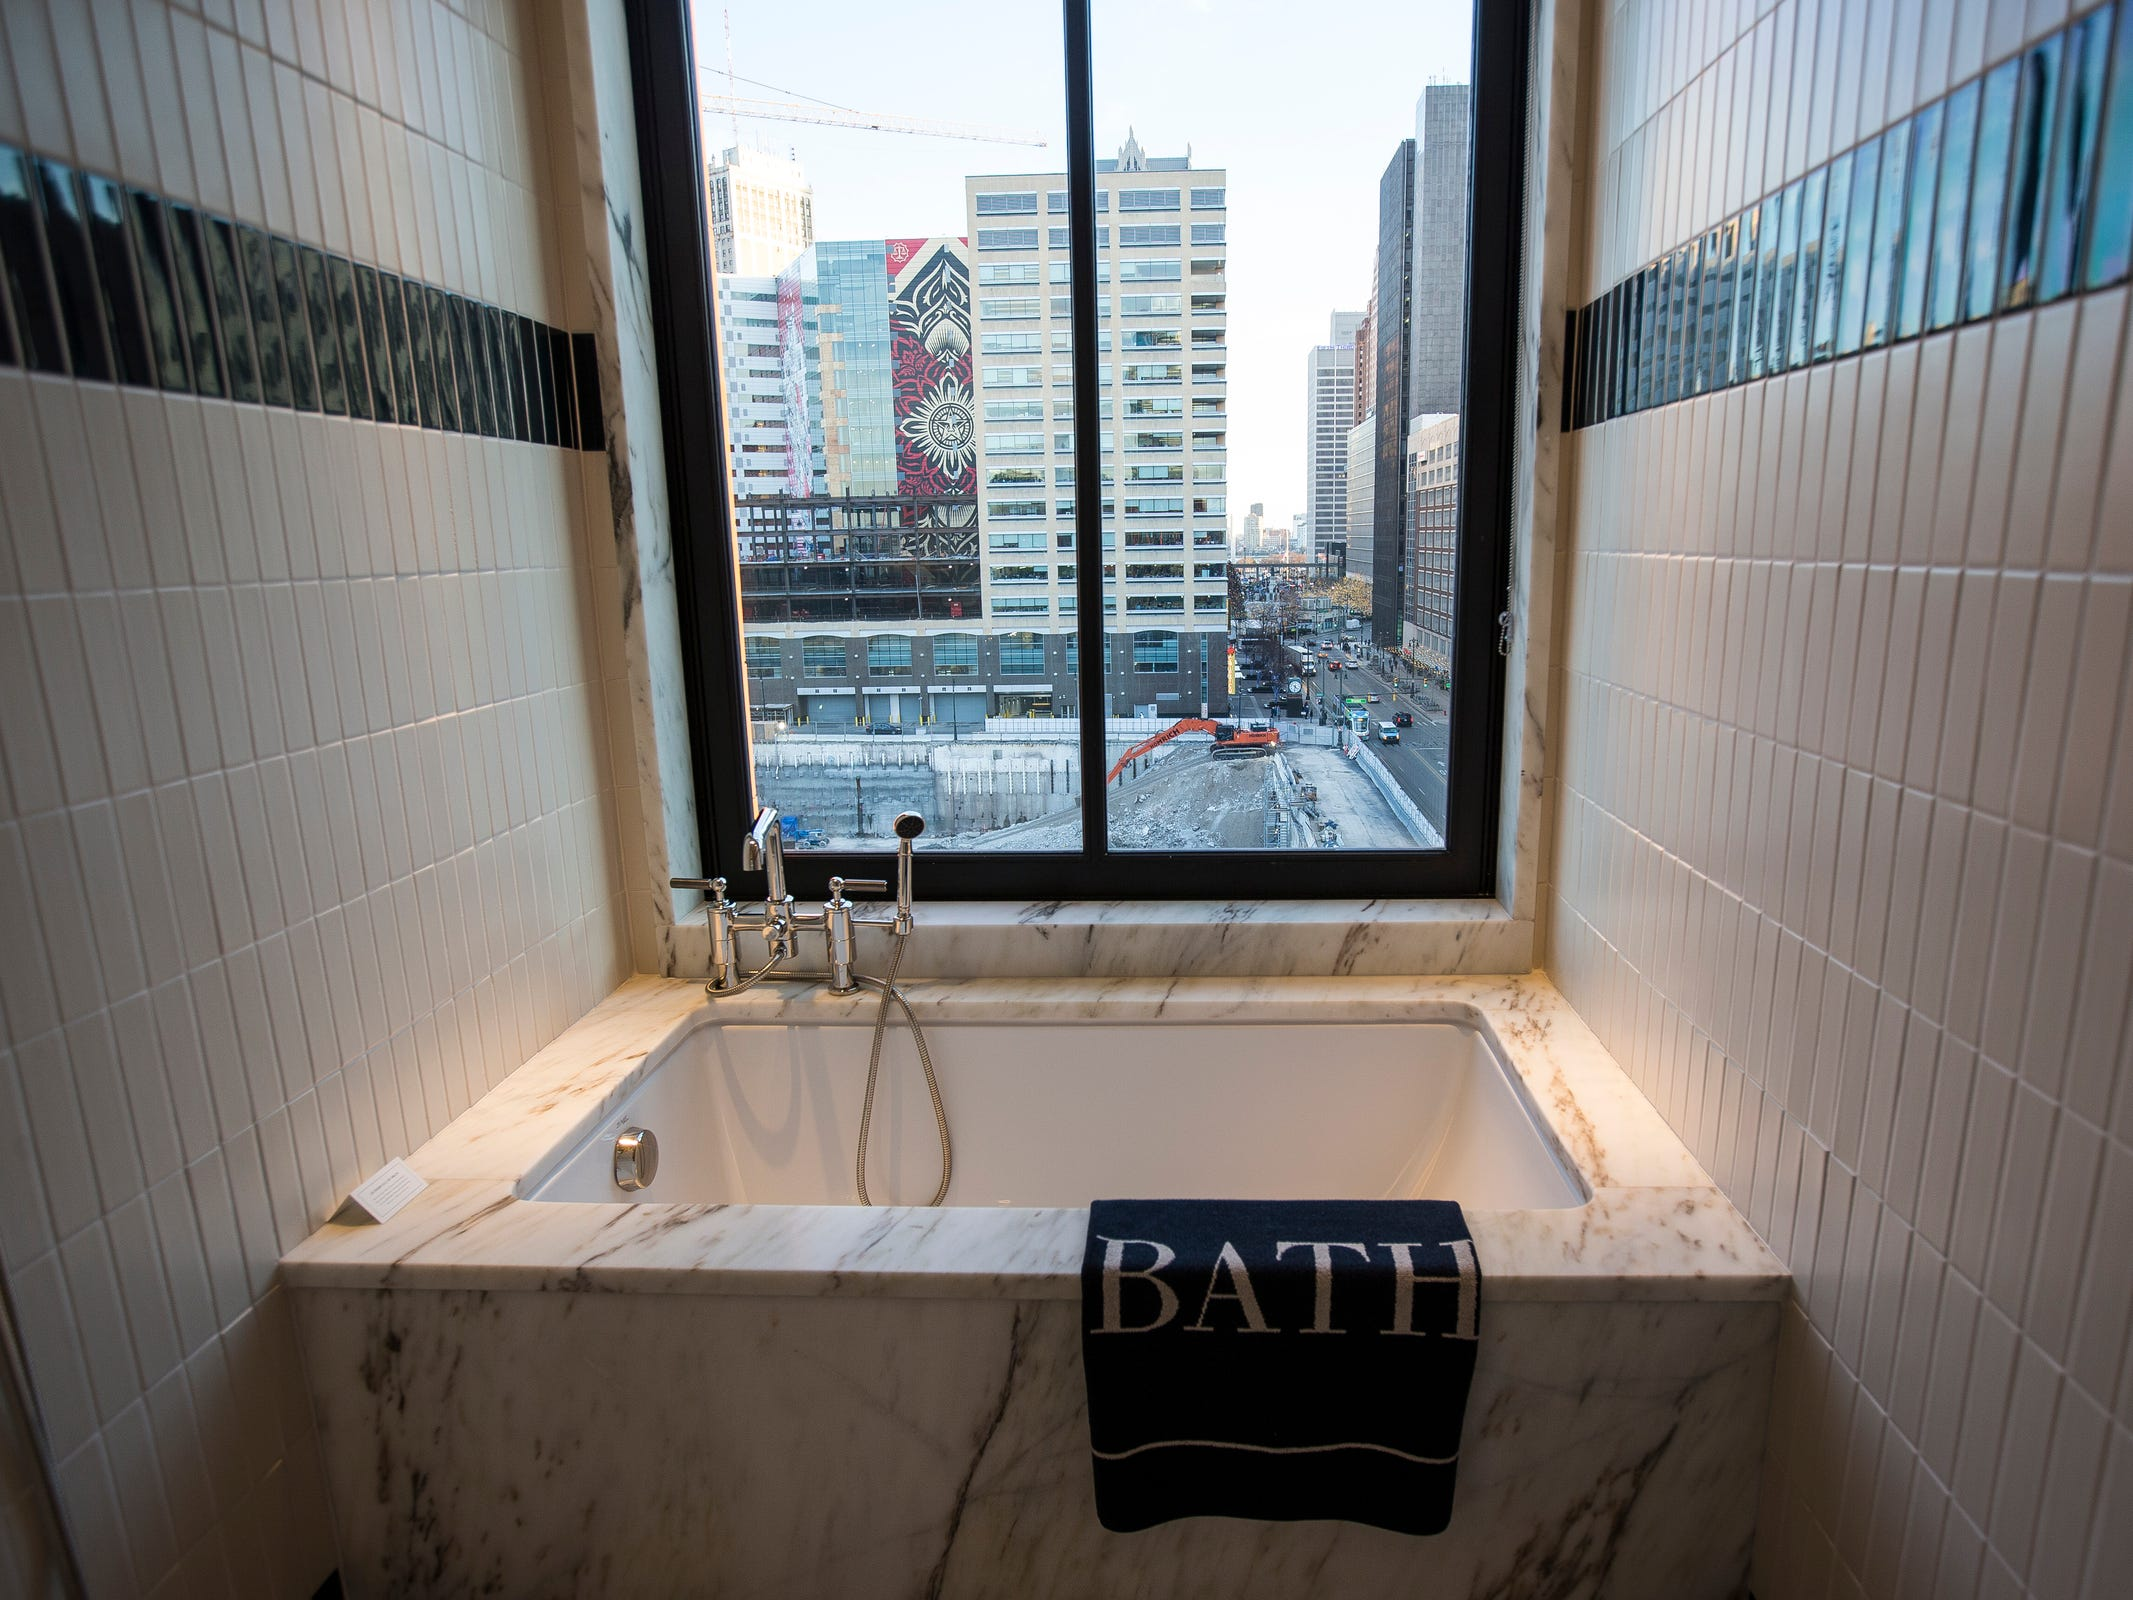 Bathtub in a gallery style guest room in the Shinola Hotel in downtown Detroit, Dec. 18, 2018. There are 15 different styles of guest rooms in the Shinola Hotel.